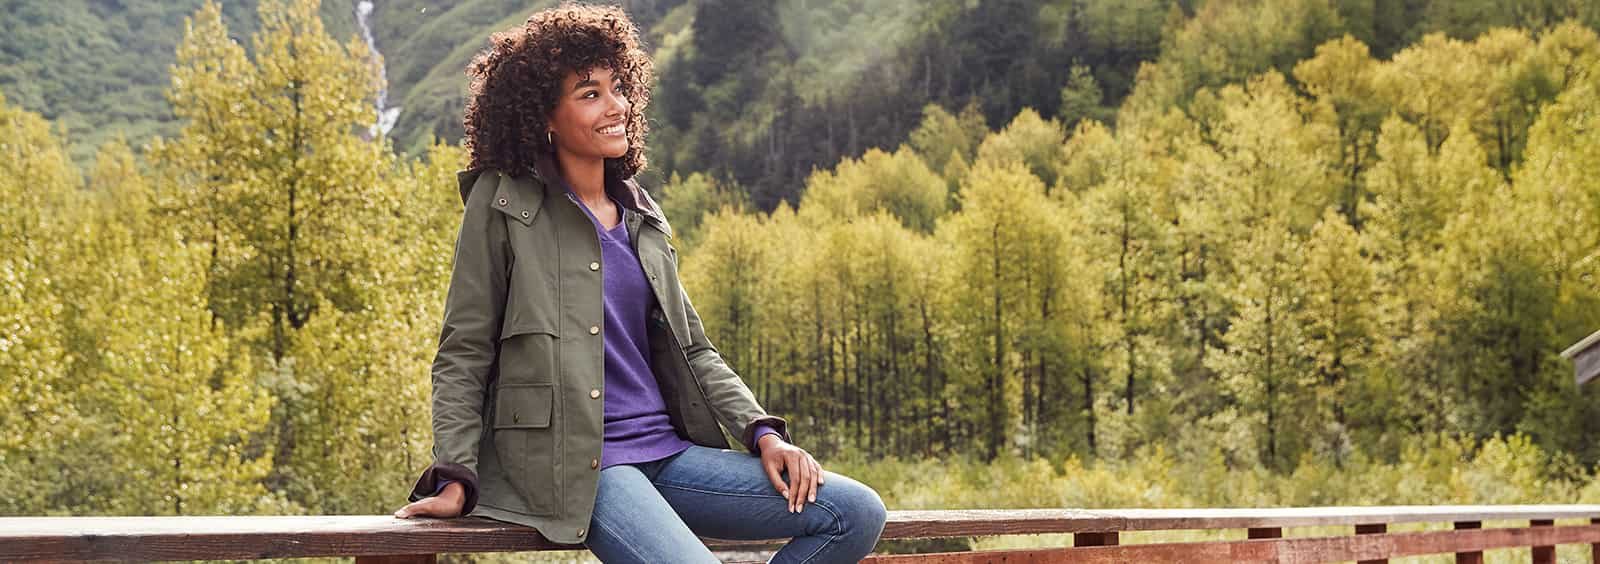 Women's Casual Jackets to Wear With Pull-On Jeans